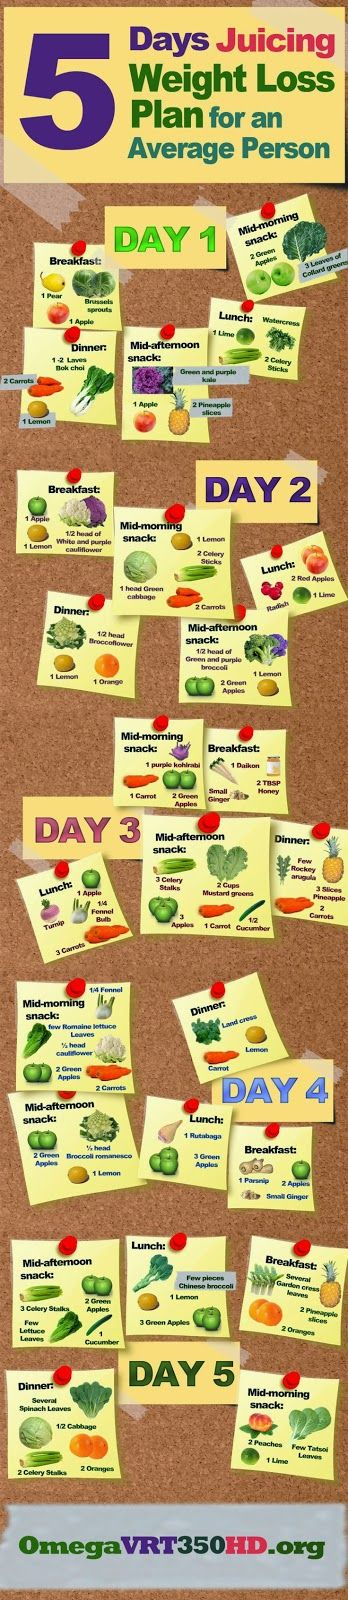 5 Days Simple Juicing Weight Loss Plan